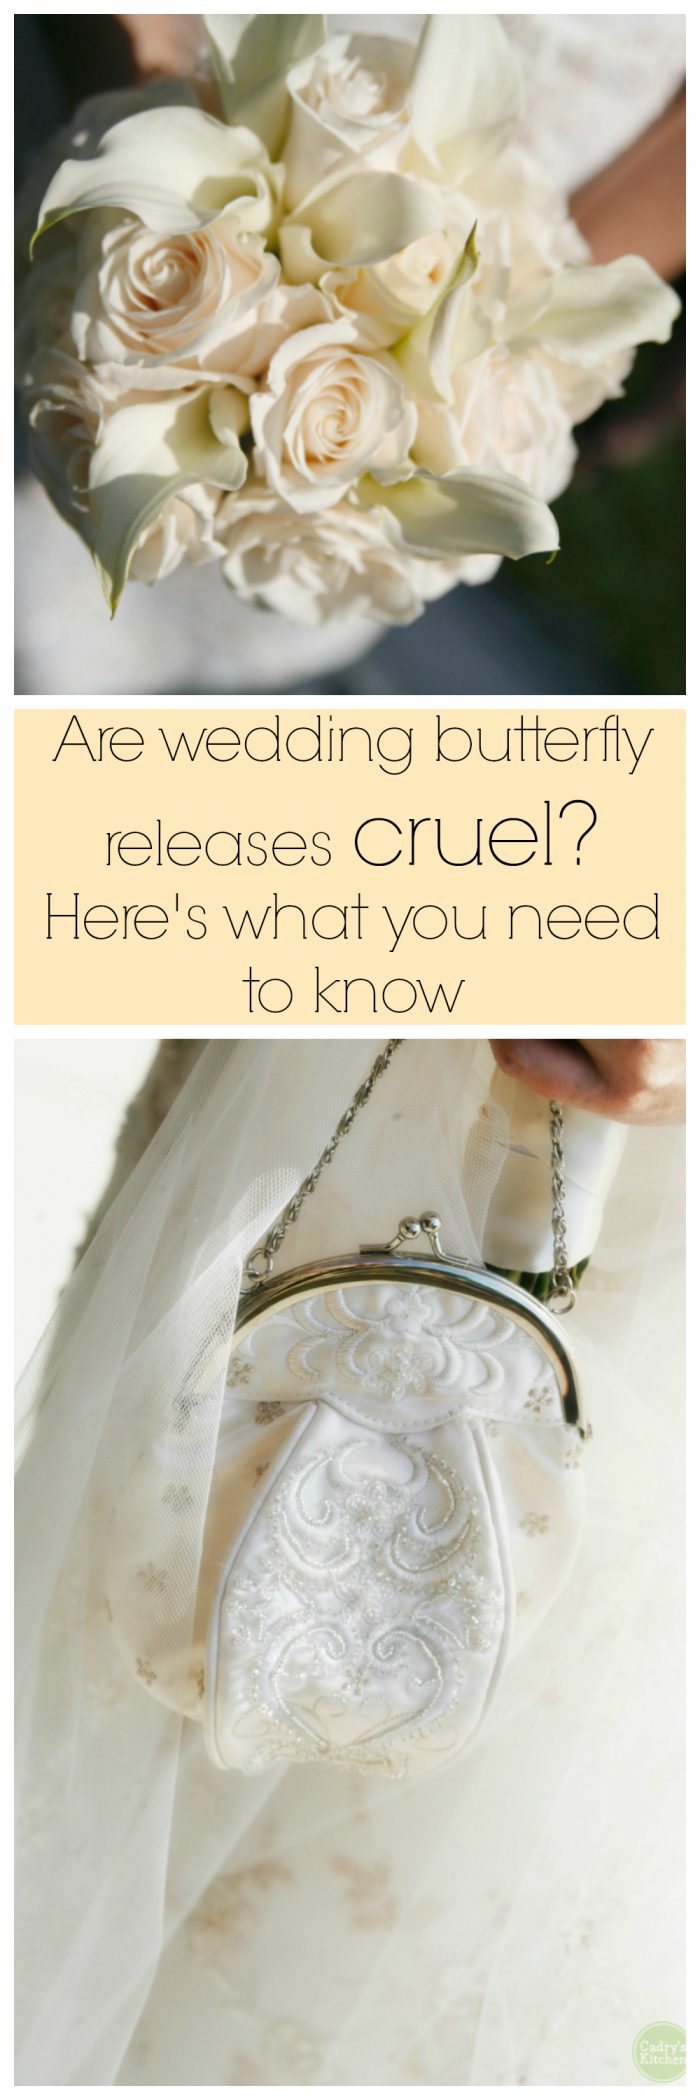 Are wedding butterfly releases cruel? Here's what you need to know before you plan your next event. | cadryskitchen.com